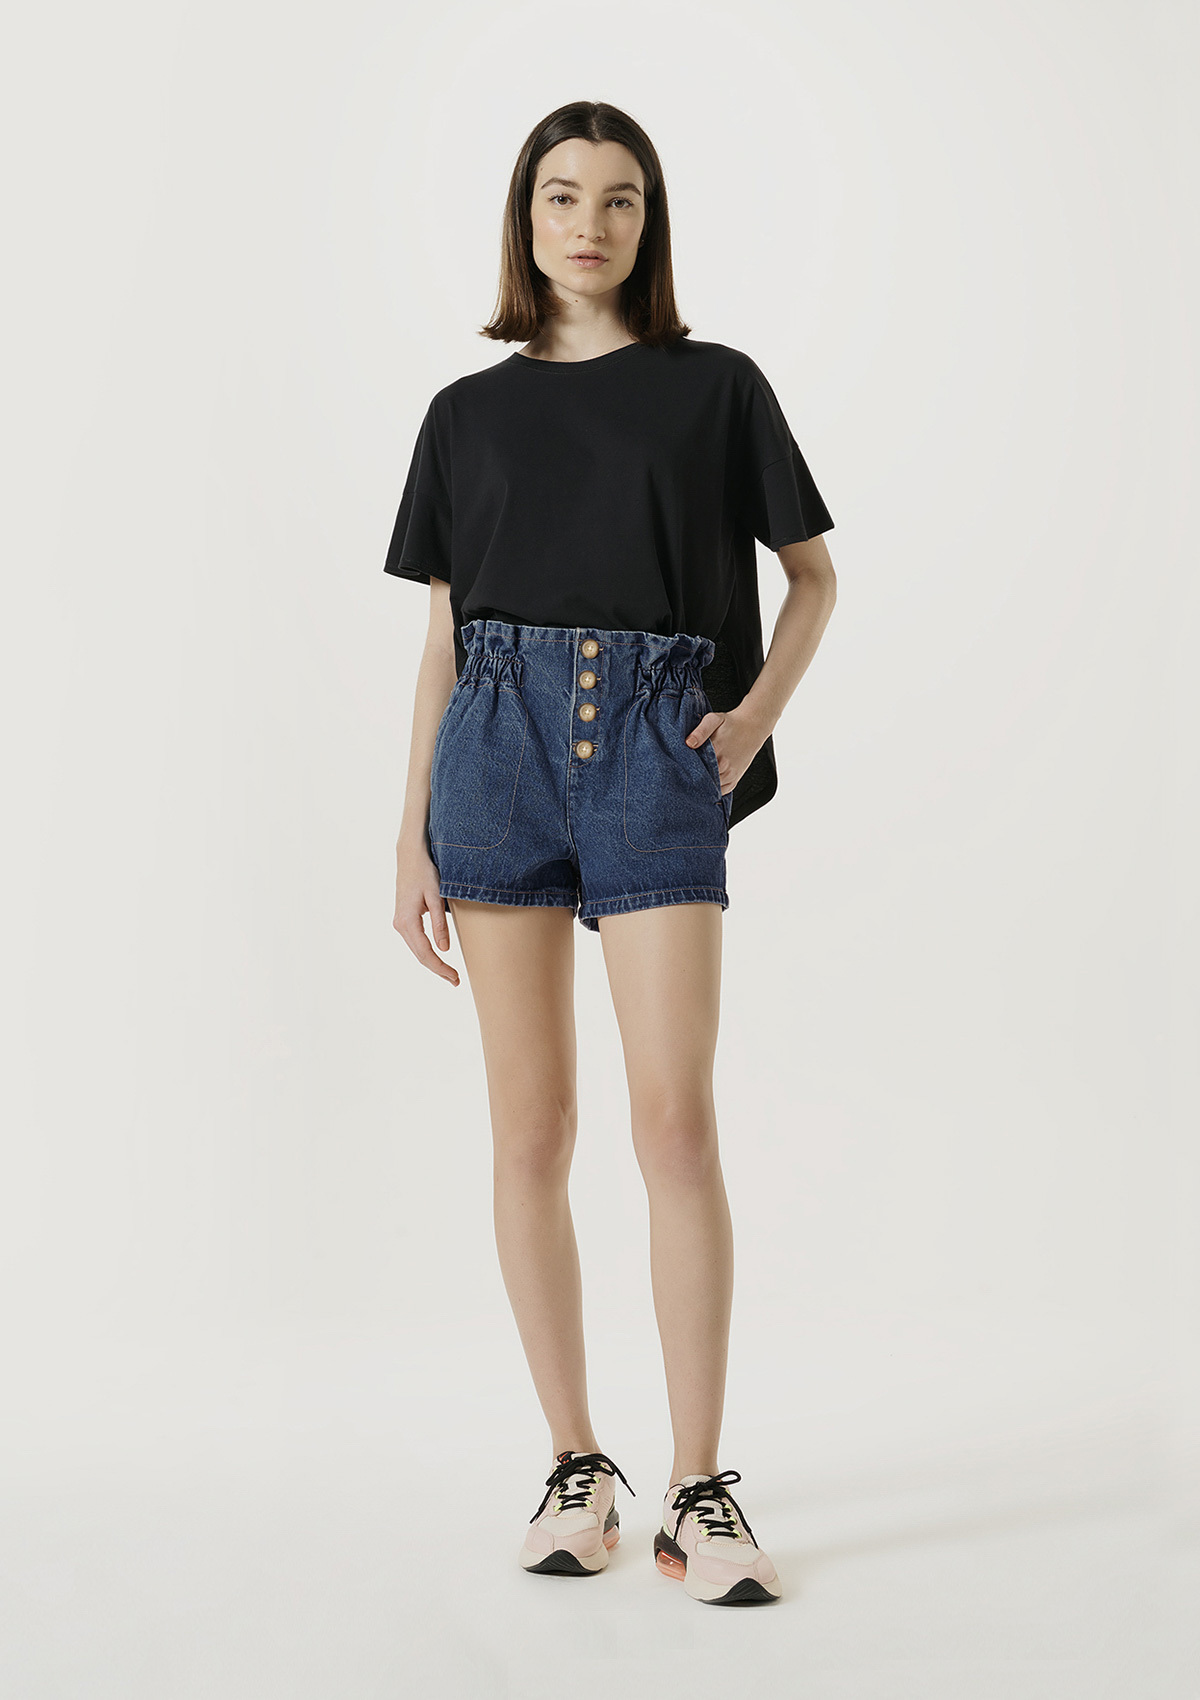 Shorts Jeans Feminino Clochard